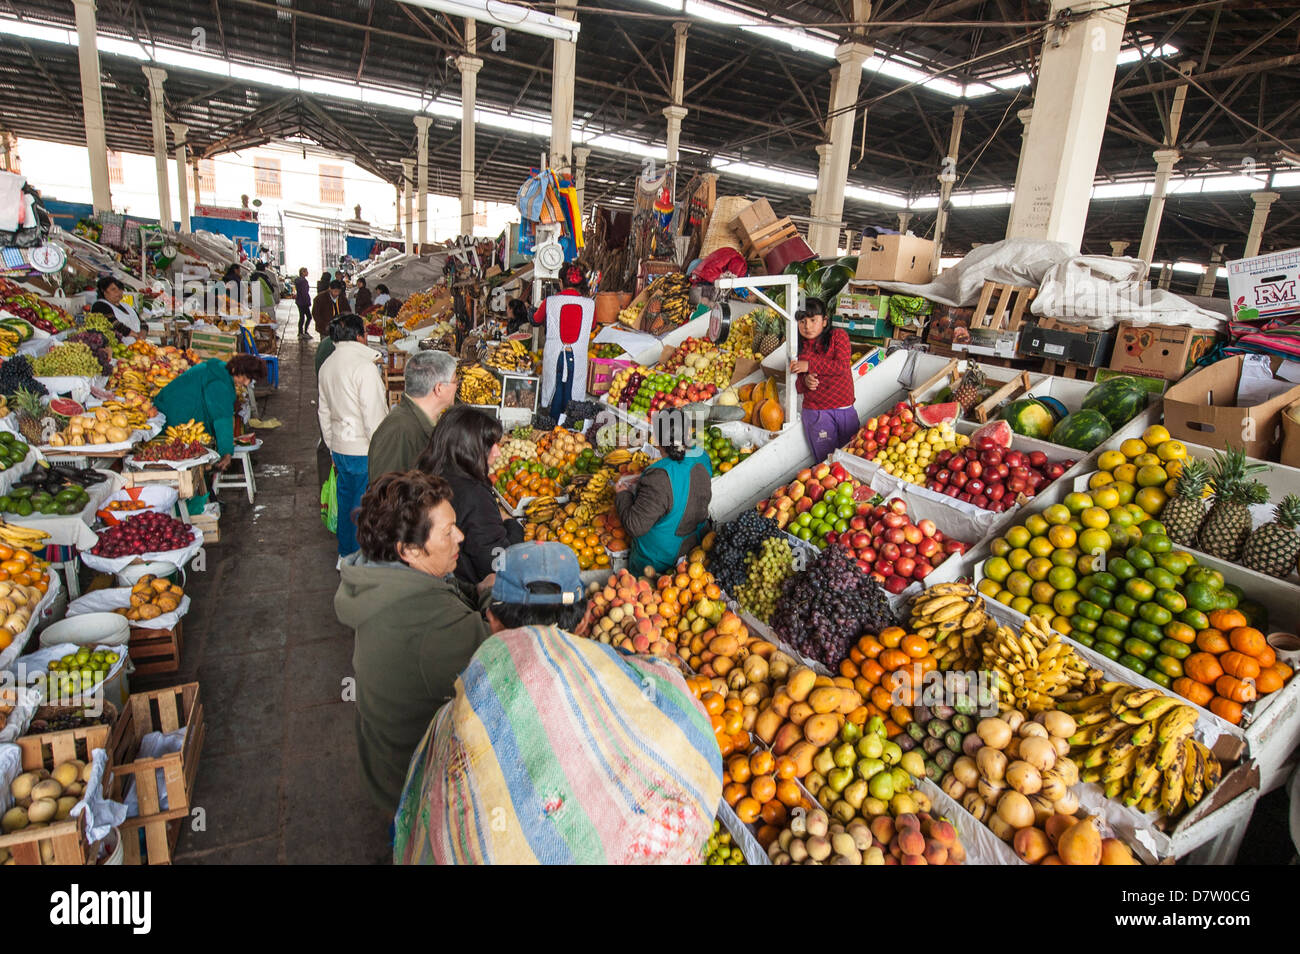 Fruit stall in the local market Cuzco, Peru, South America - Stock Image